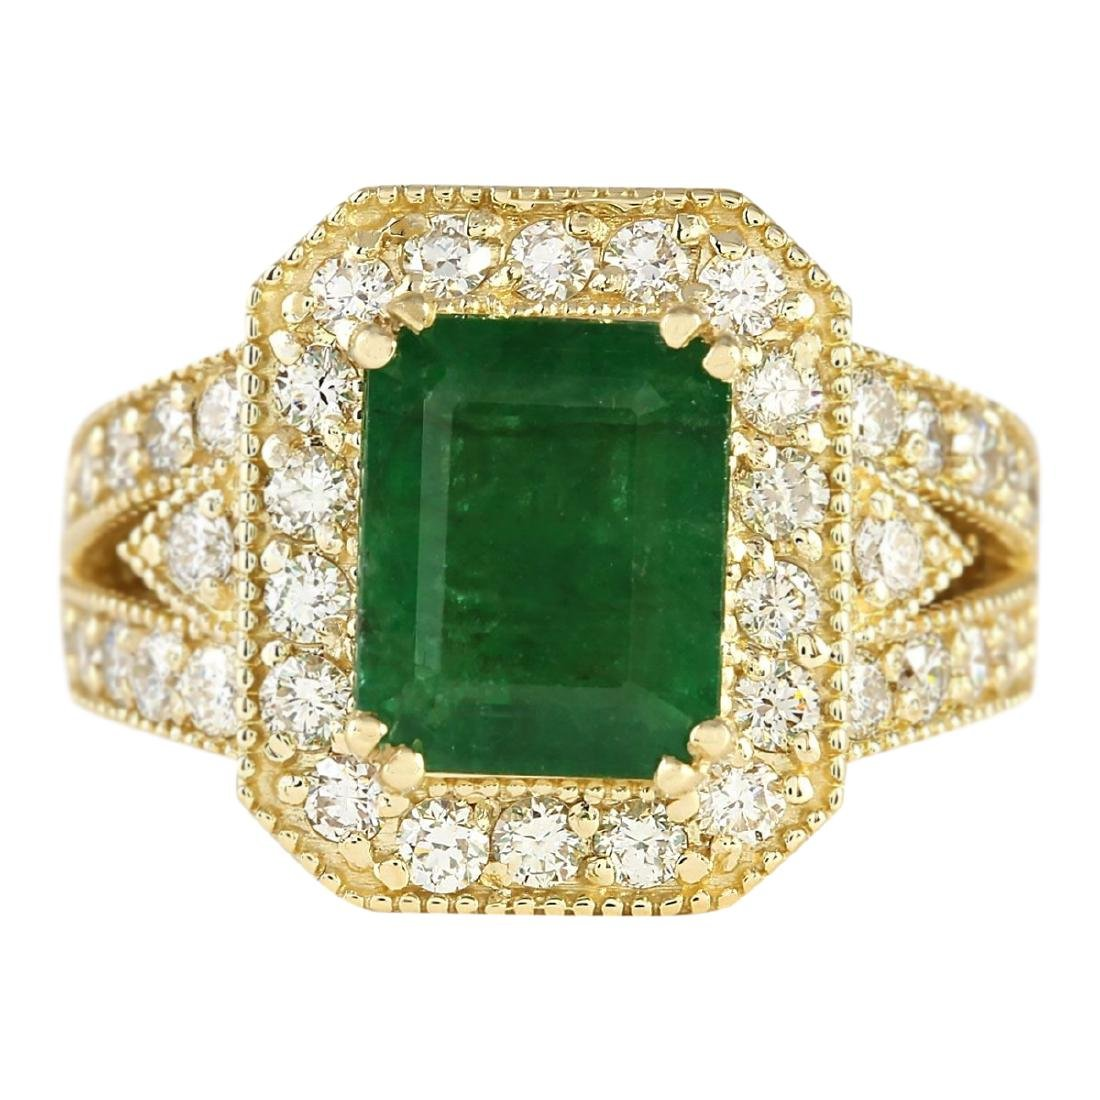 4.83 CTW Natural Emerald And Diamond Ring In 18K Yellow